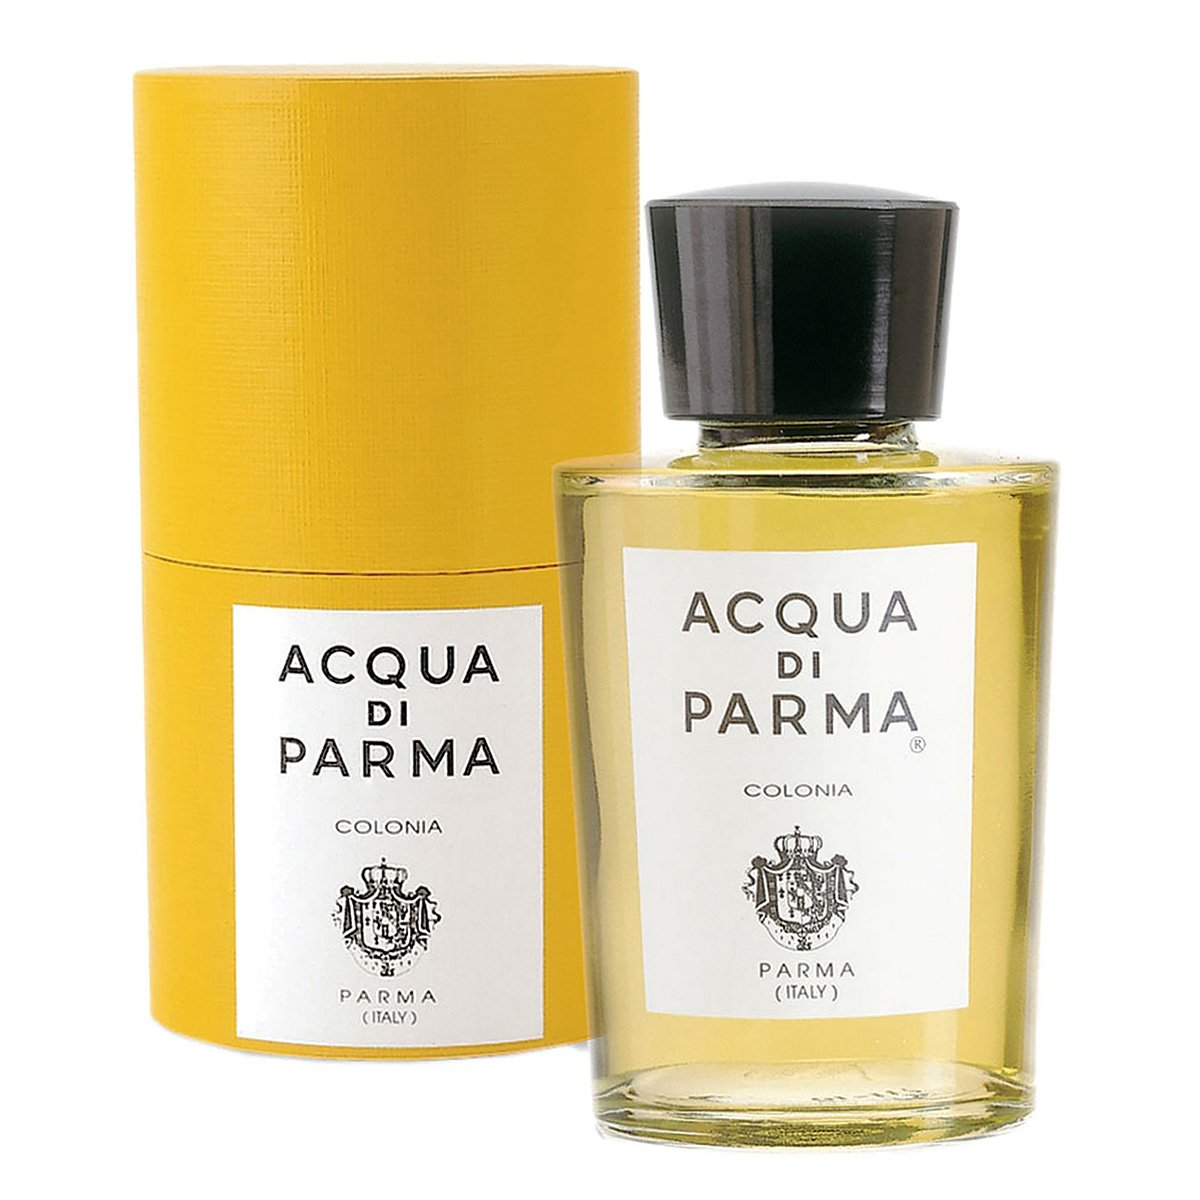 Acqua di Parma Colonia 50ml edc